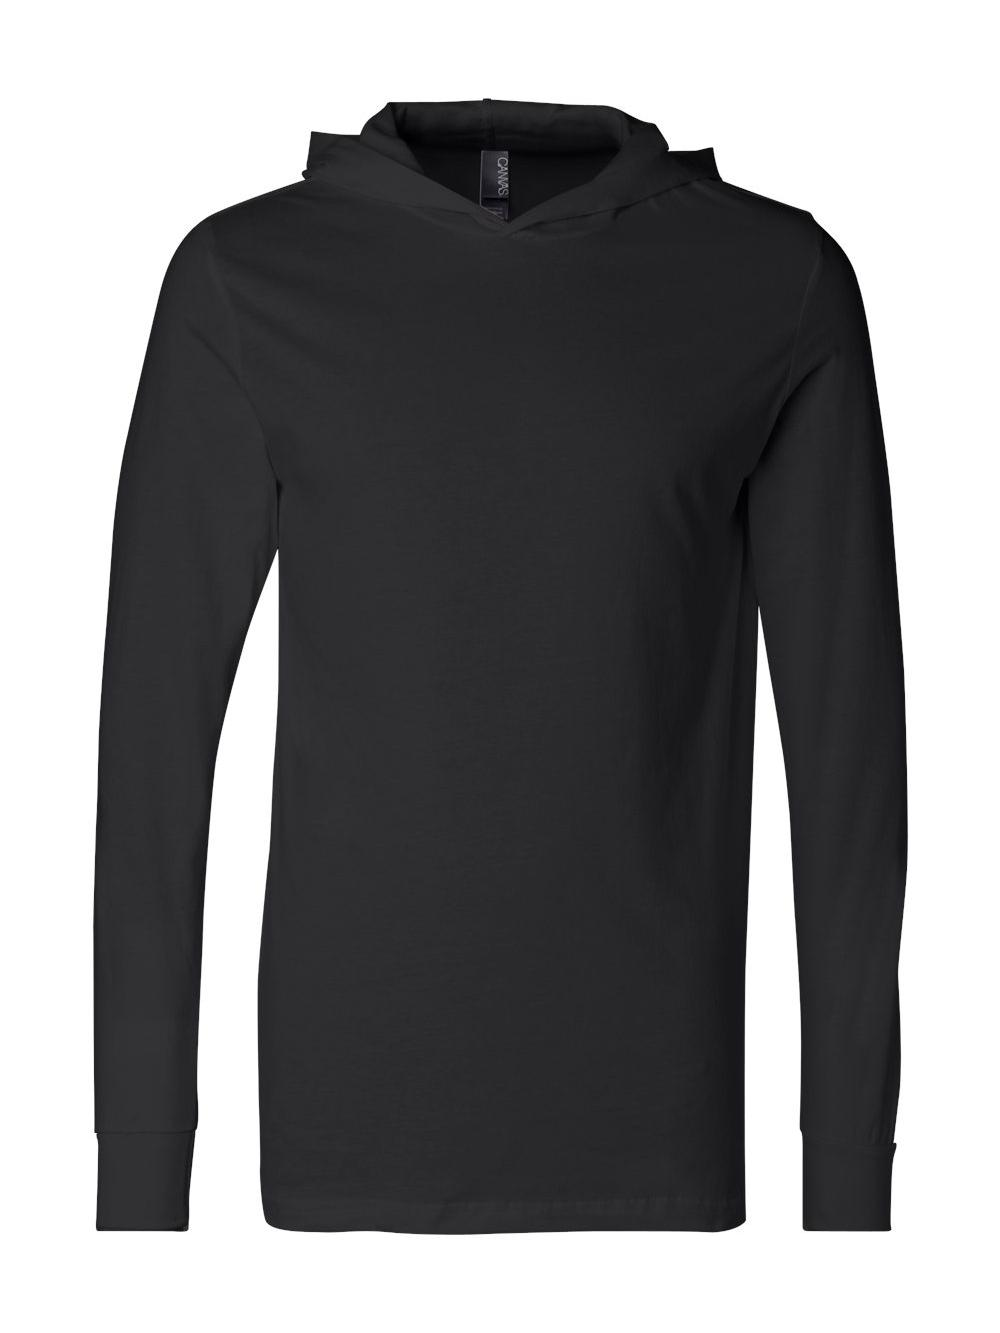 Bella-Canvas-Unisex-Long-Sleeve-Jersey-Hooded-Tee-3512 thumbnail 6